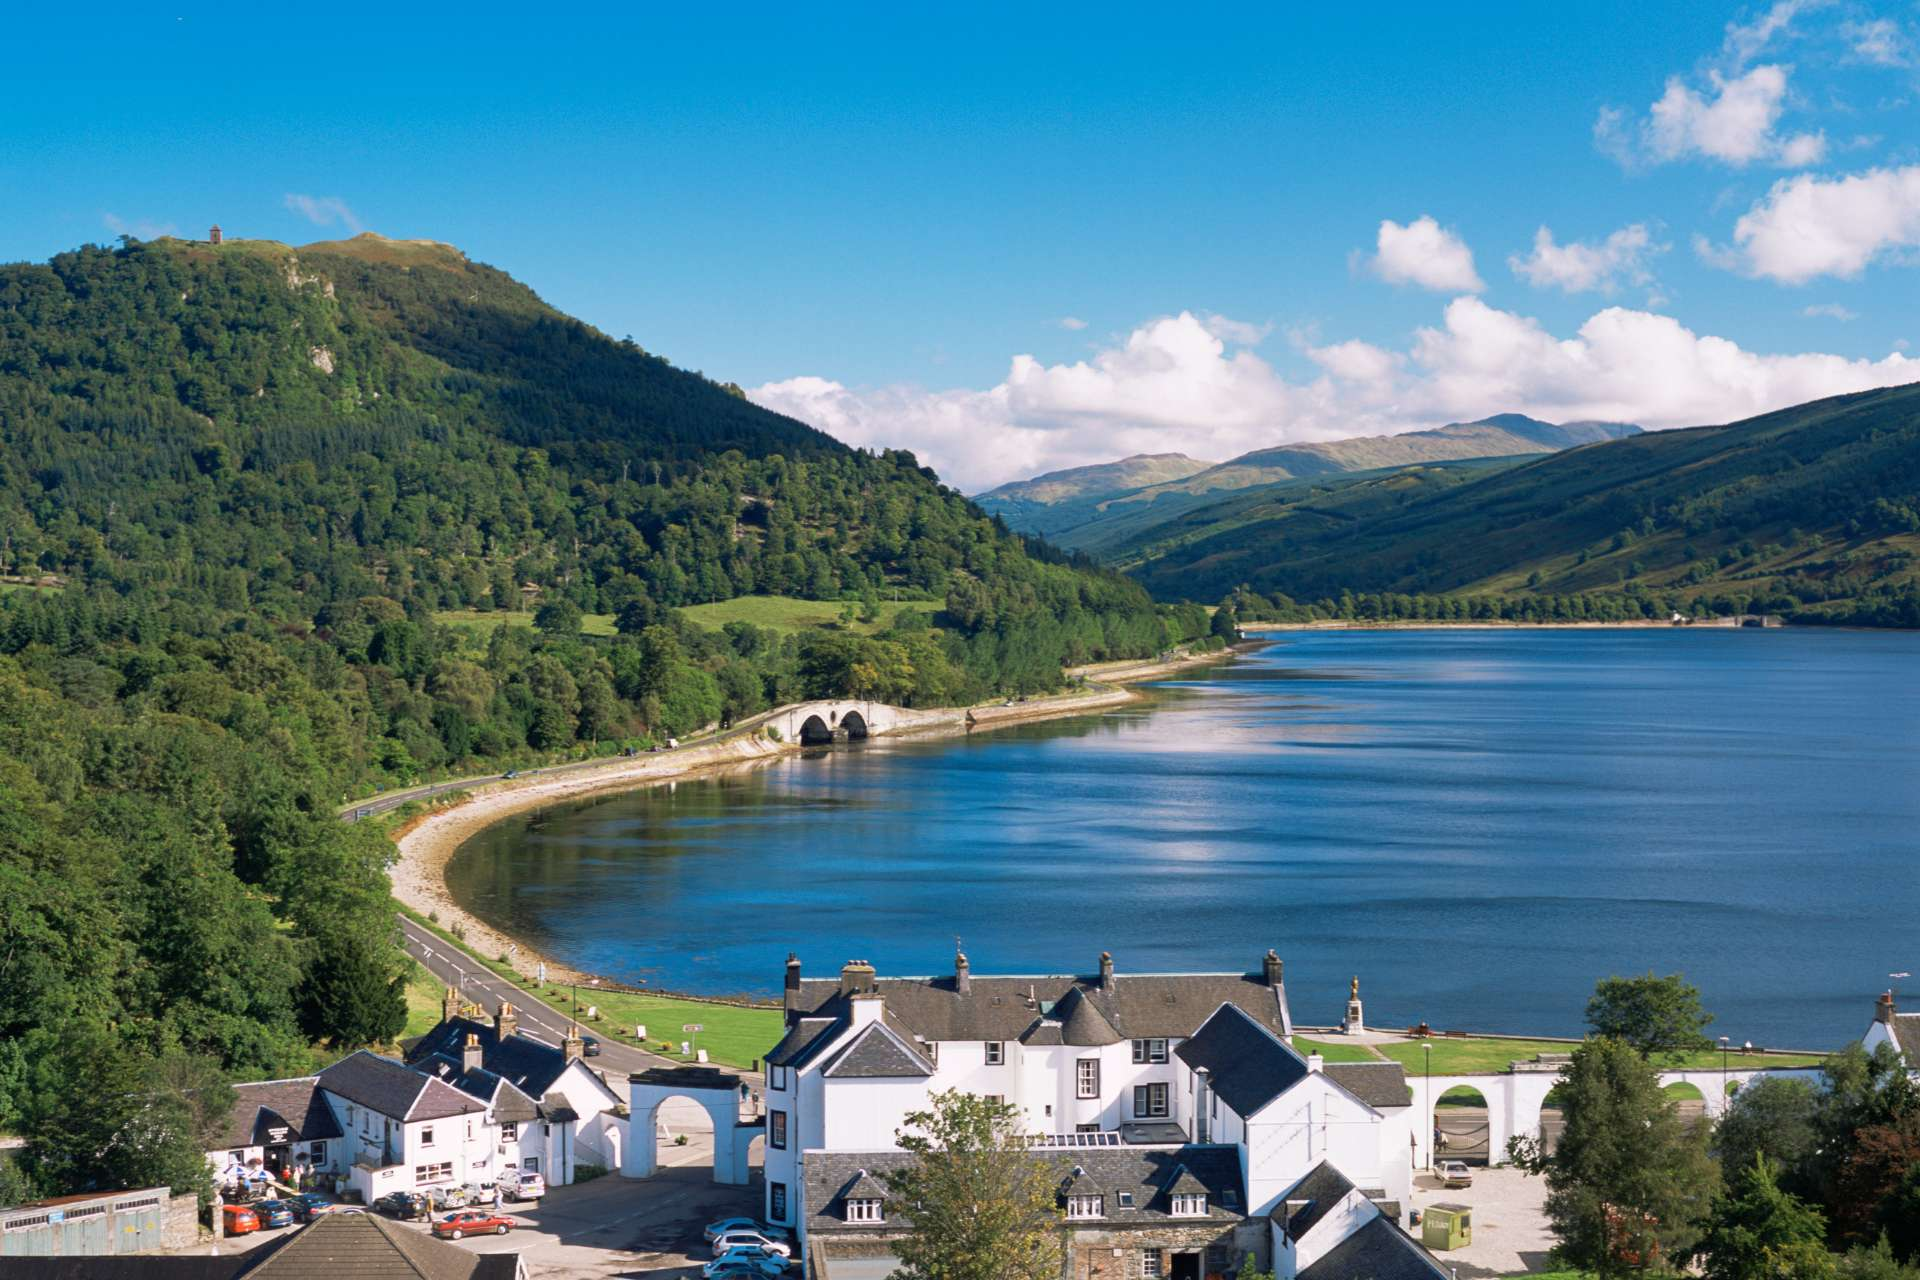 Inveraray on Loch Fyne